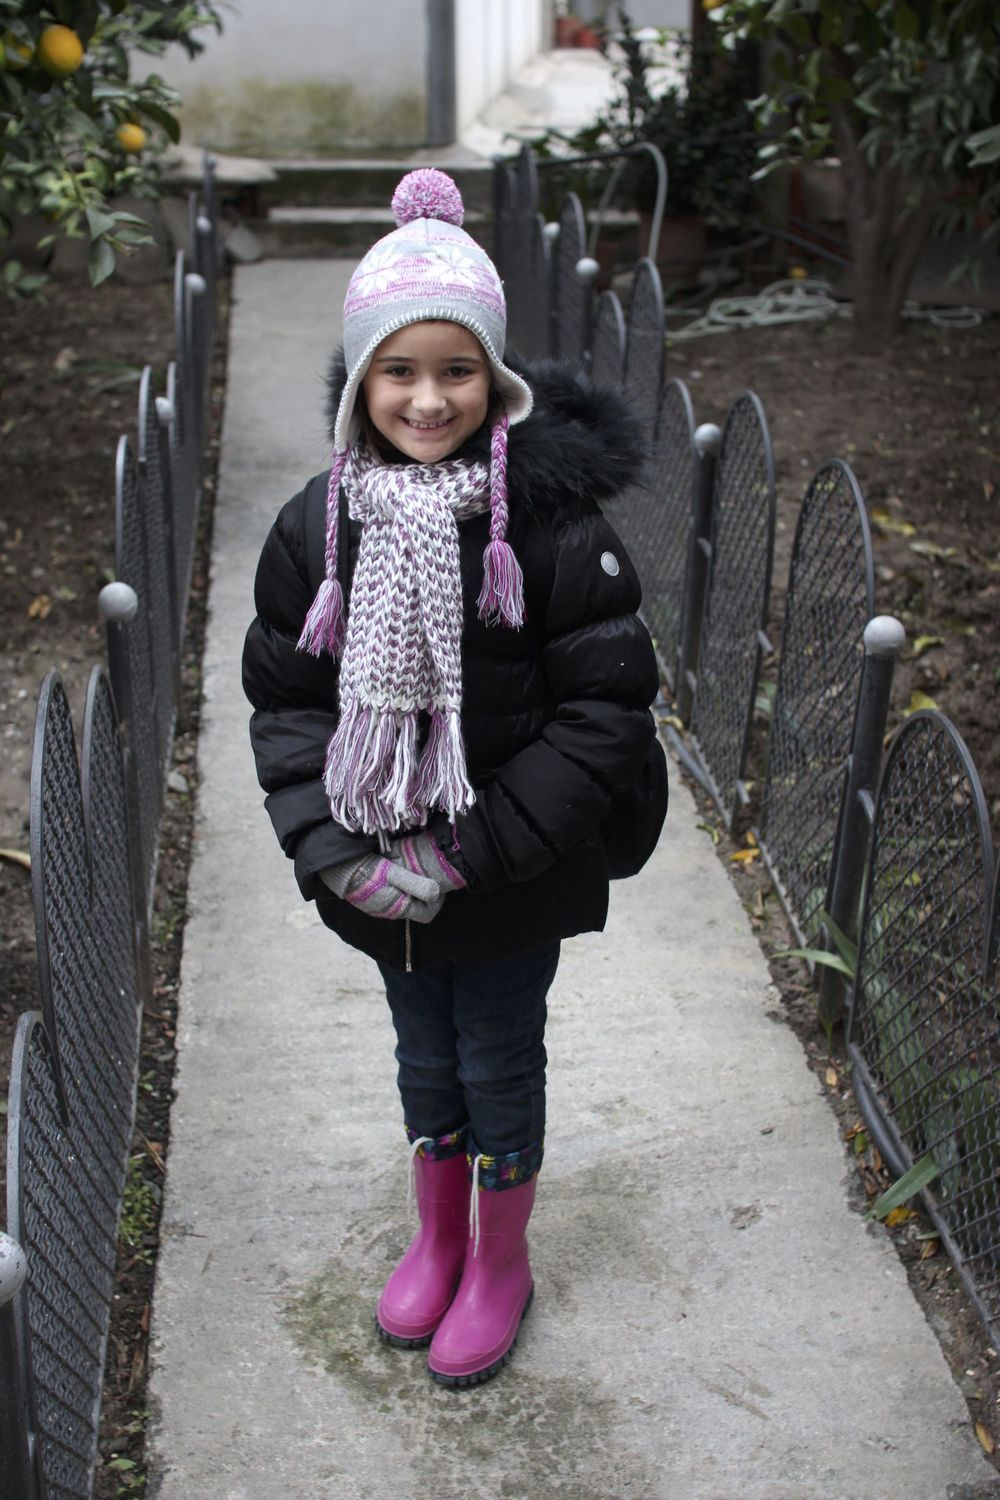 Xhiljana (Jillian) dressed up warm for a cold walk to school.